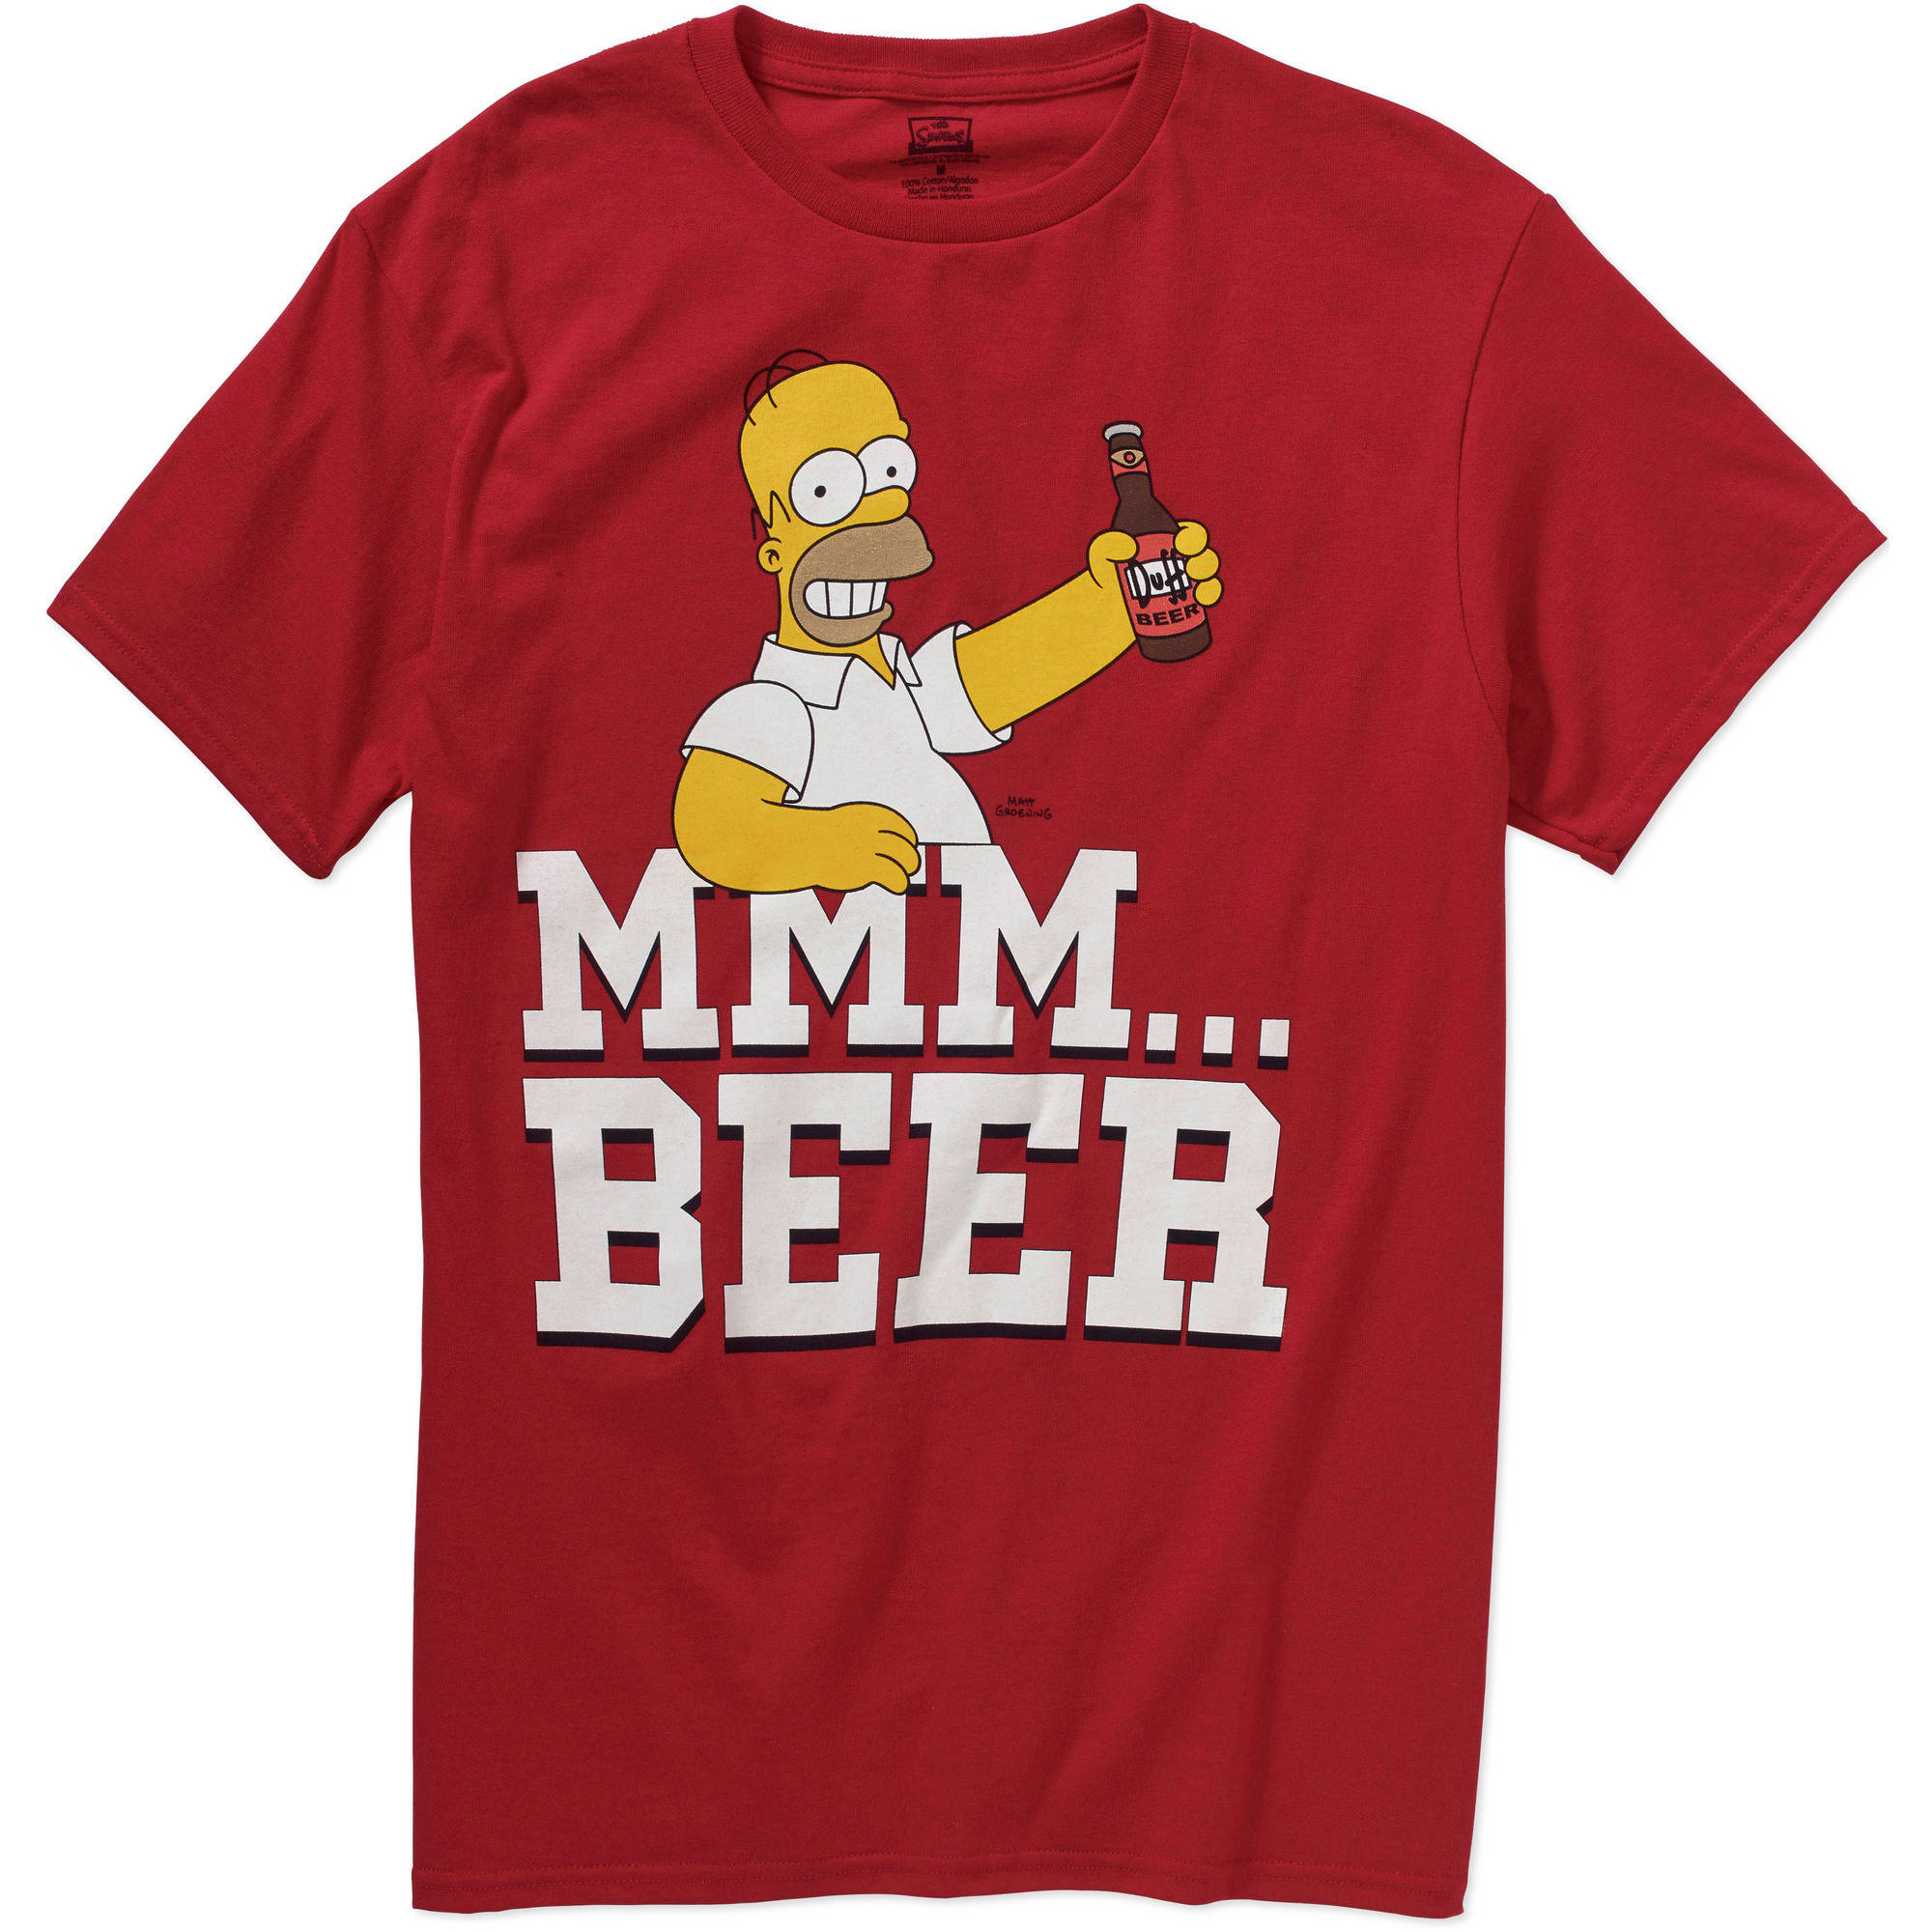 Simpsons Homer Mmm Beer  Men's Graphic Tee